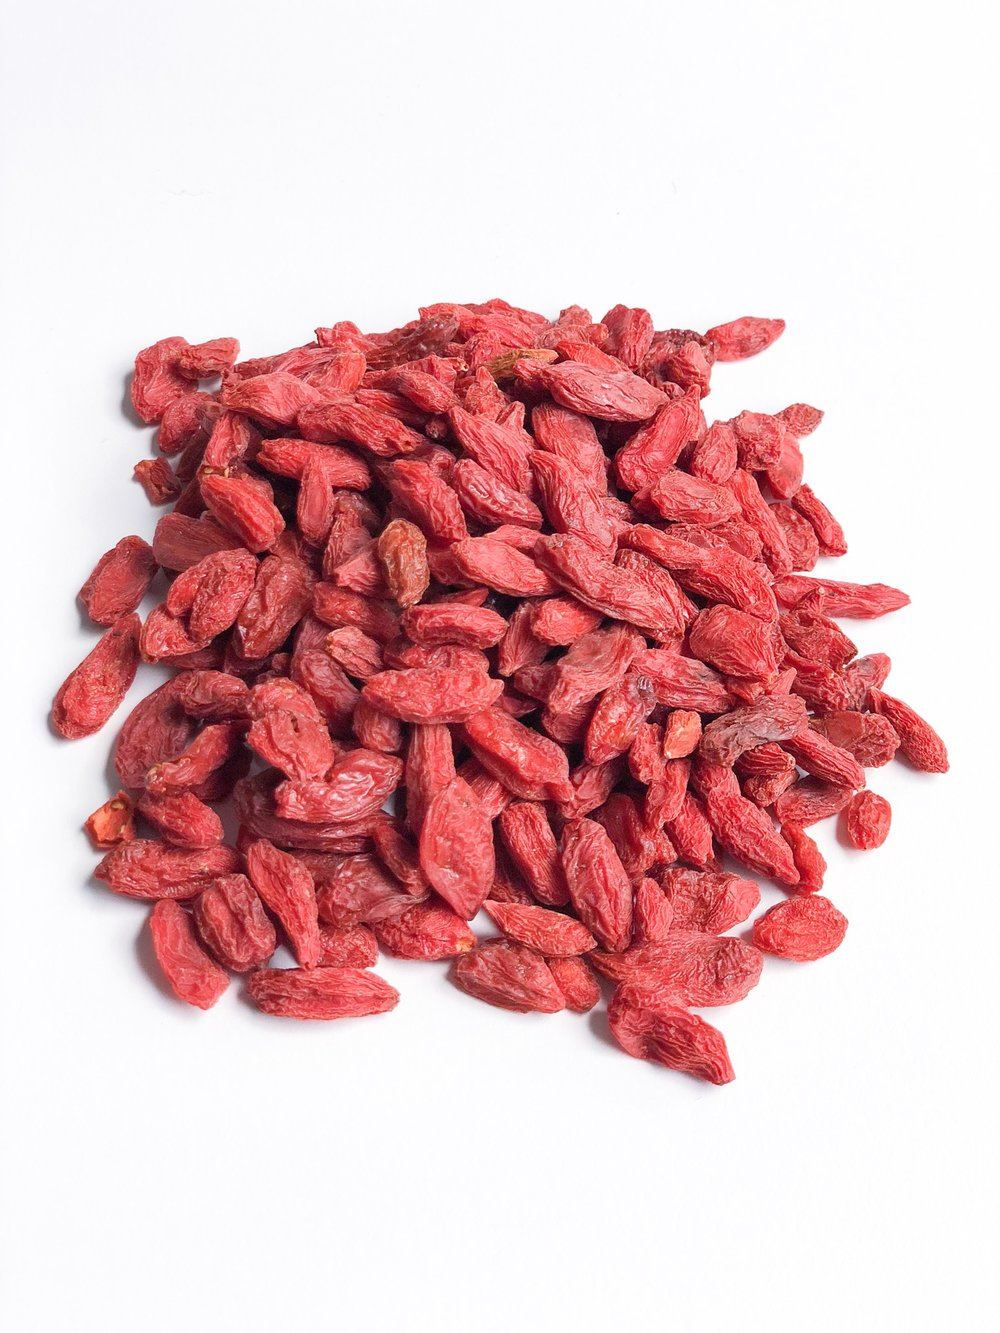 """- Health Benefits of Goji BerriesLow in calories, fat-free, a good source of fiber and a high anti-oxidant food, goji berry benefits include the ability to help you fight disease, effectively manage your weight and experience better digestion. Usually eaten raw, dried, or in liquid or powder form, versatile goji berries contain a wide range of phytonutrients, vitamins and trace minerals, giving them the name """"superfood berries"""" by many health experts."""